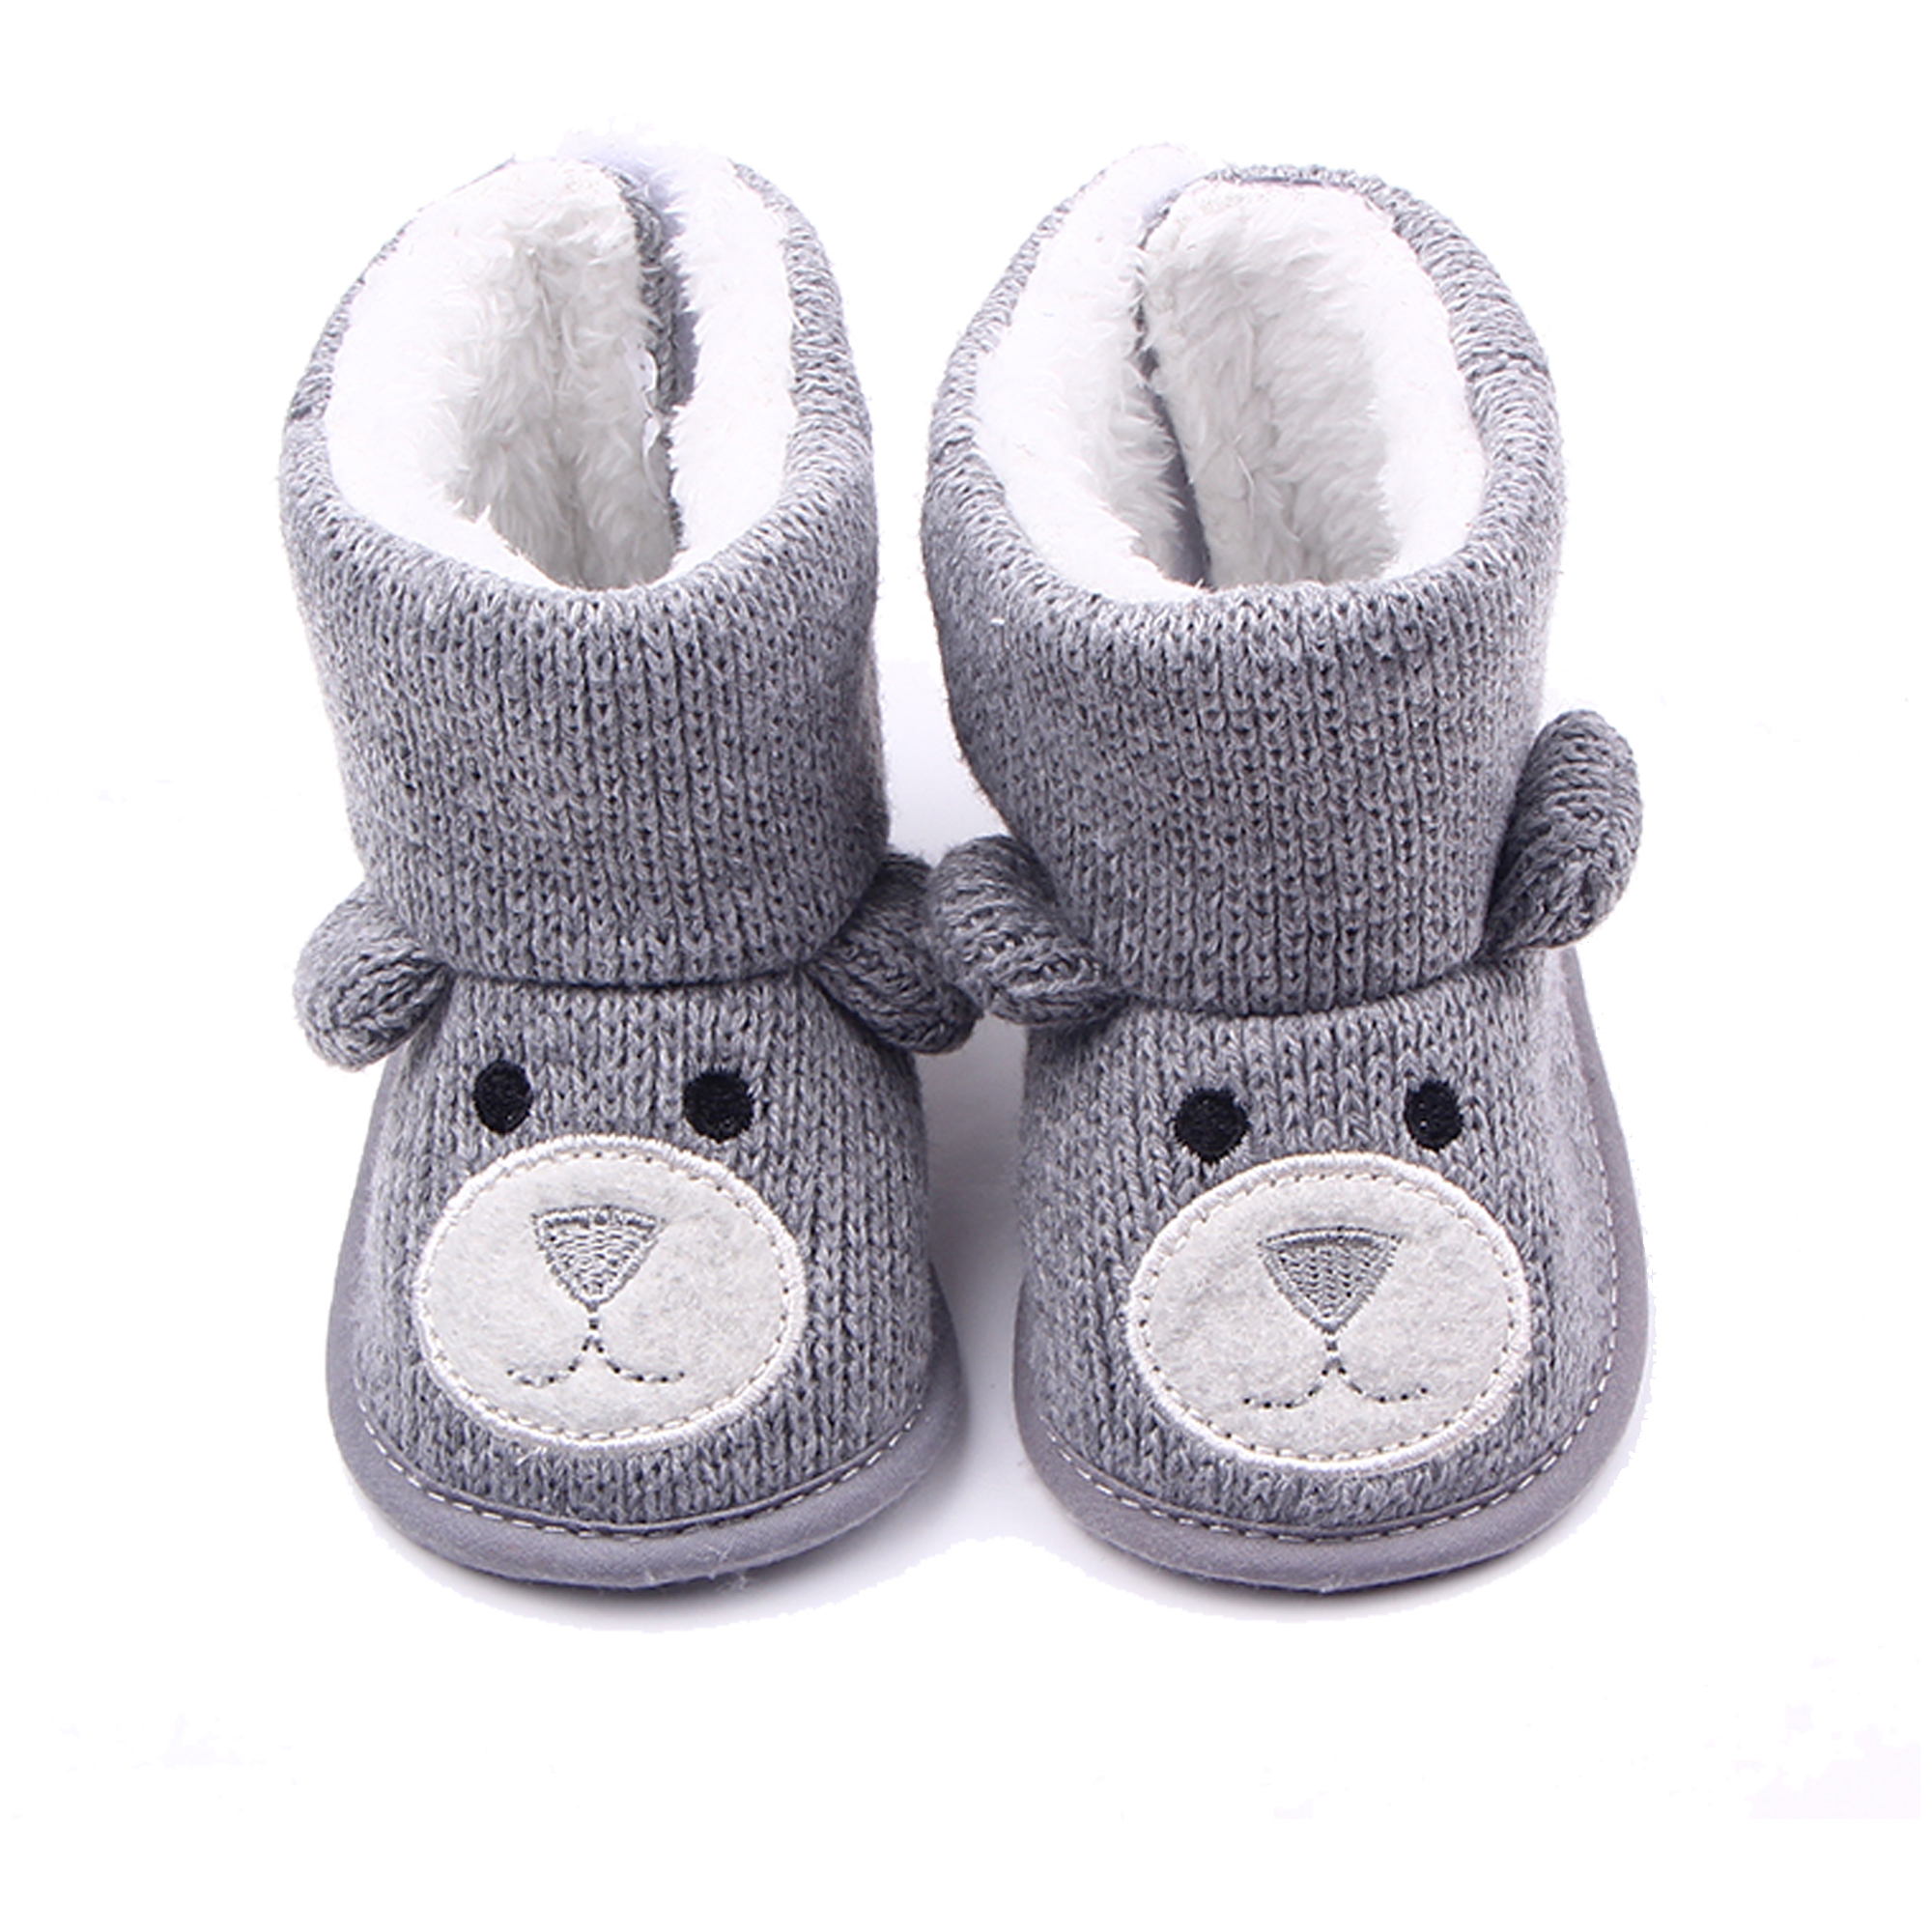 Baby Boots Cartoon Bear Newborn Boy Girl Boot Infant Boys Girls Cute Wither Booties Toddler Baby Super Keep Warm Snowfield Shoe